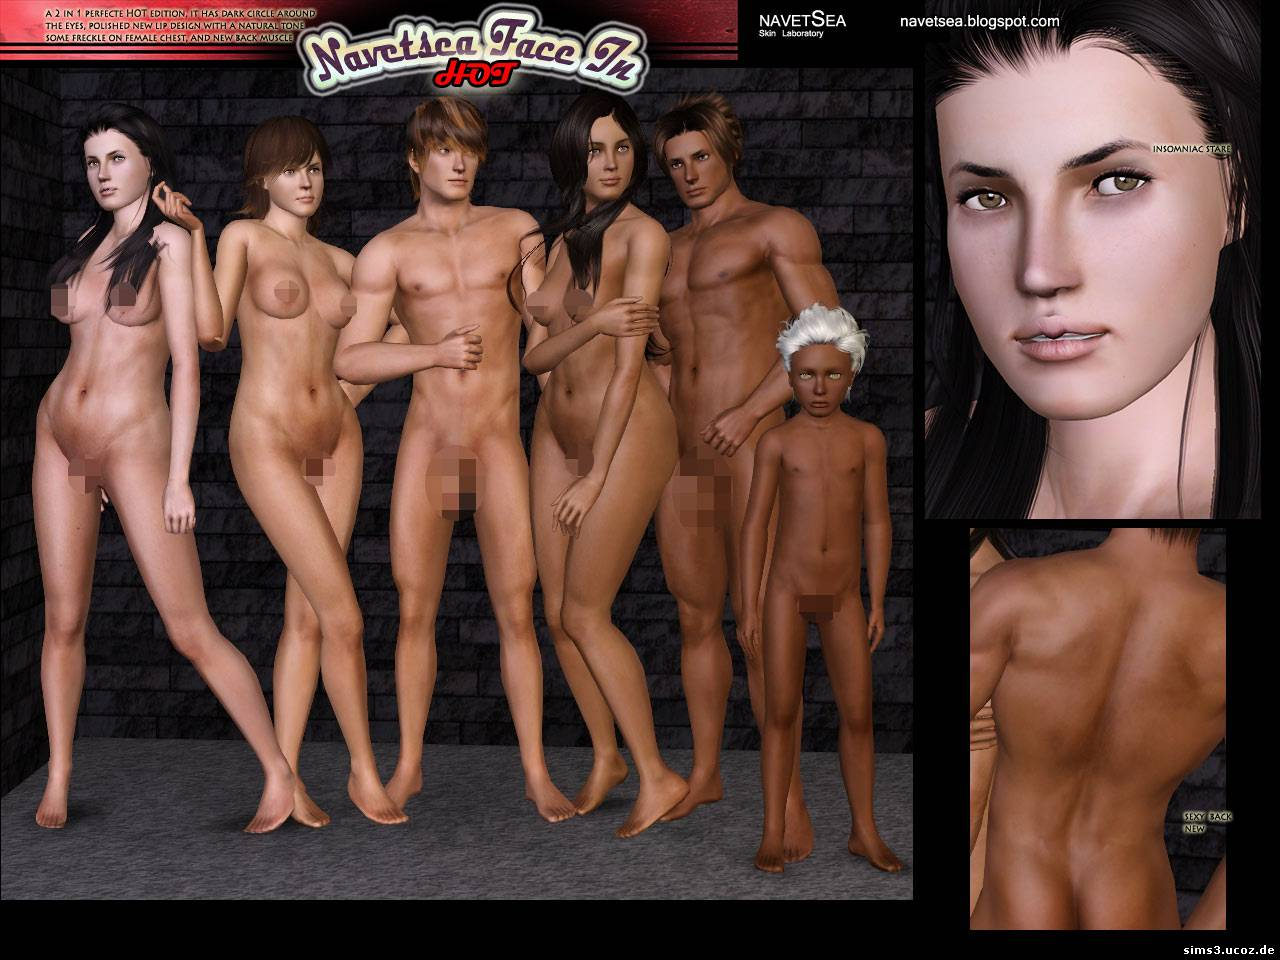 Sims 2 nude patches and cheats erotica images